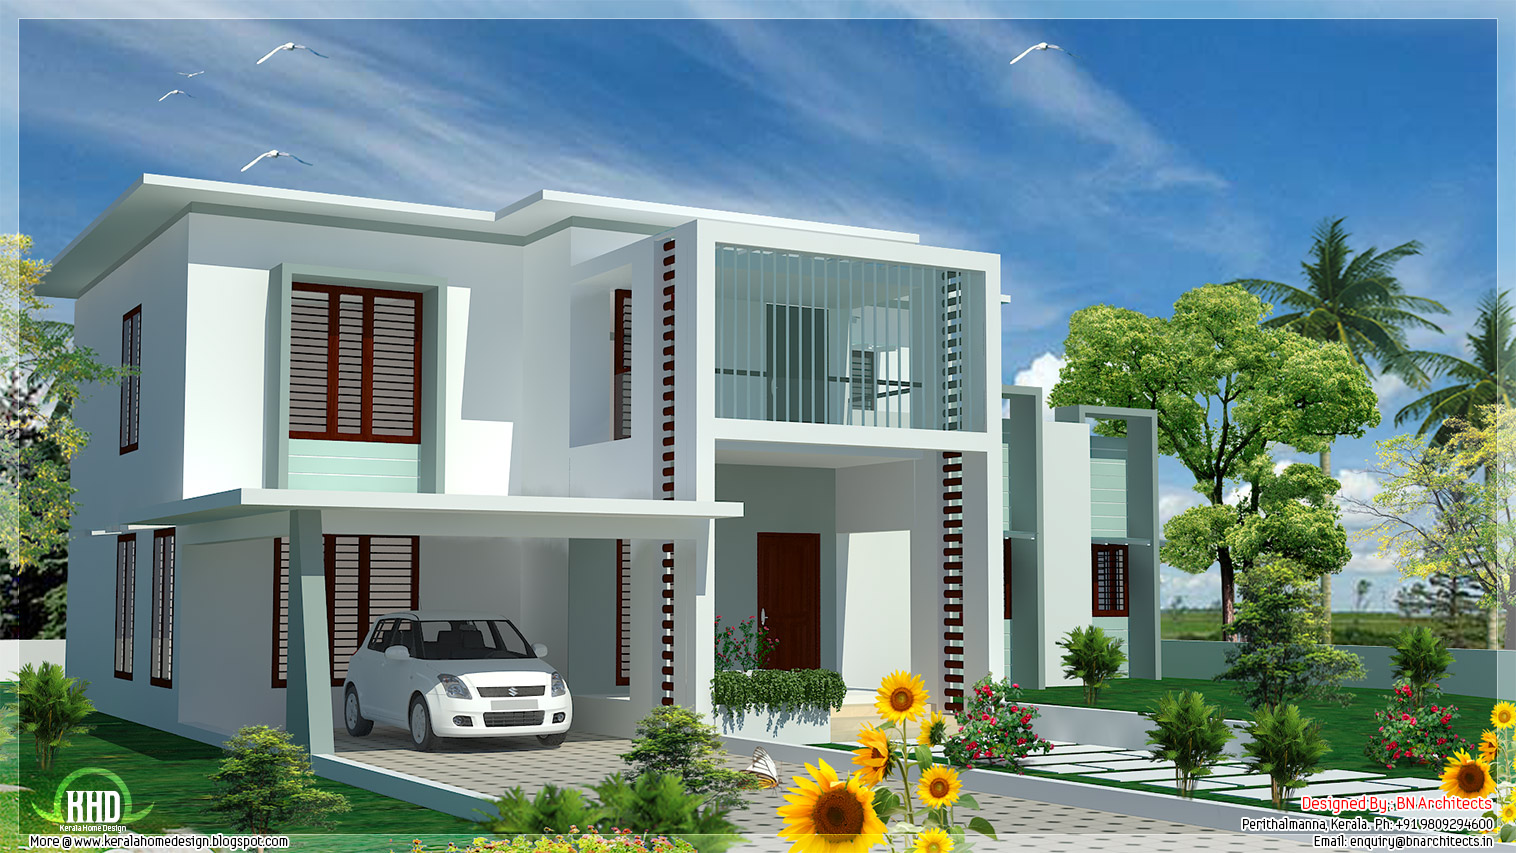 4 bedroom modern flat roof house kerala home design and for Modern house plans with photos